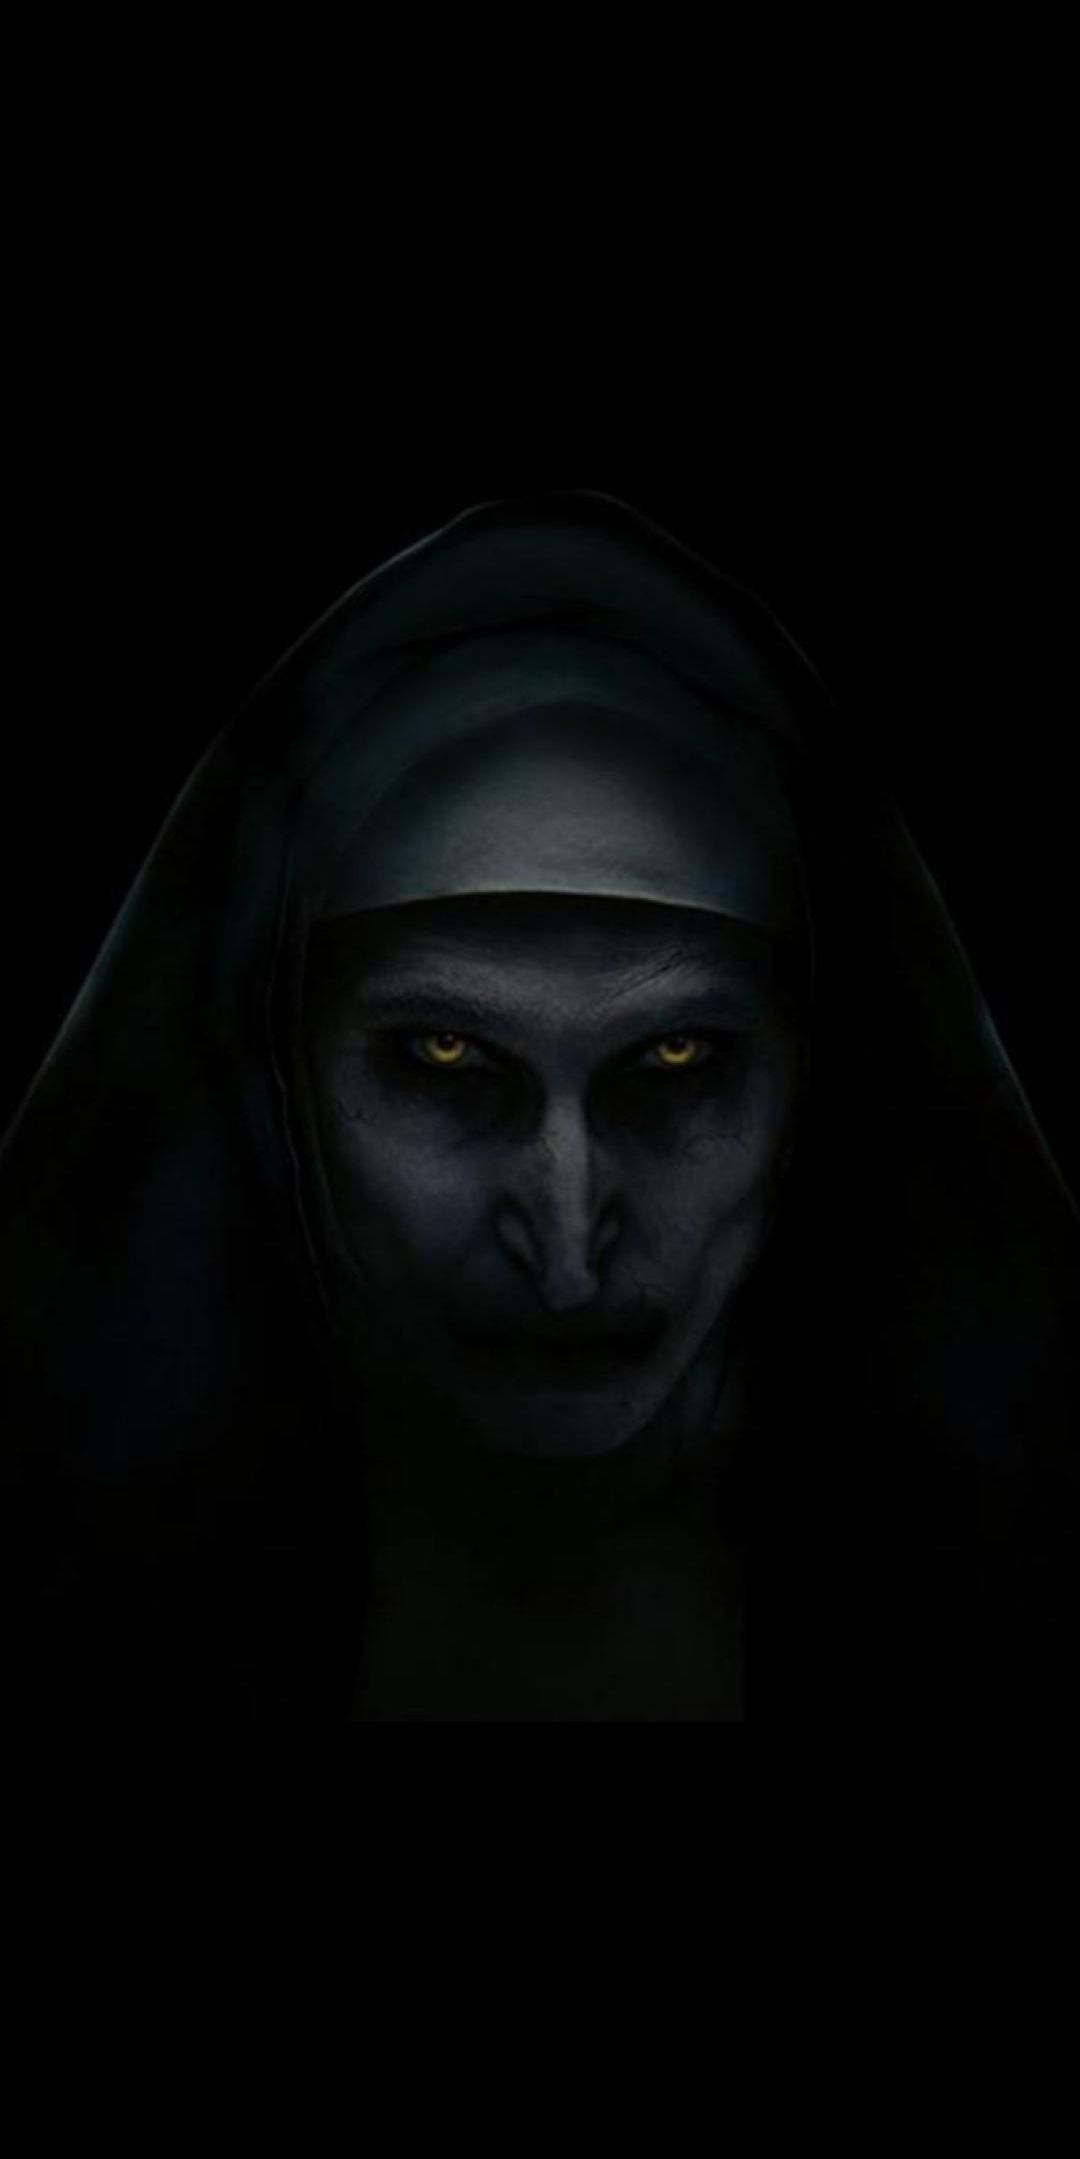 Nun Movie Horror iPhone Wallpaper Scary wallpaper